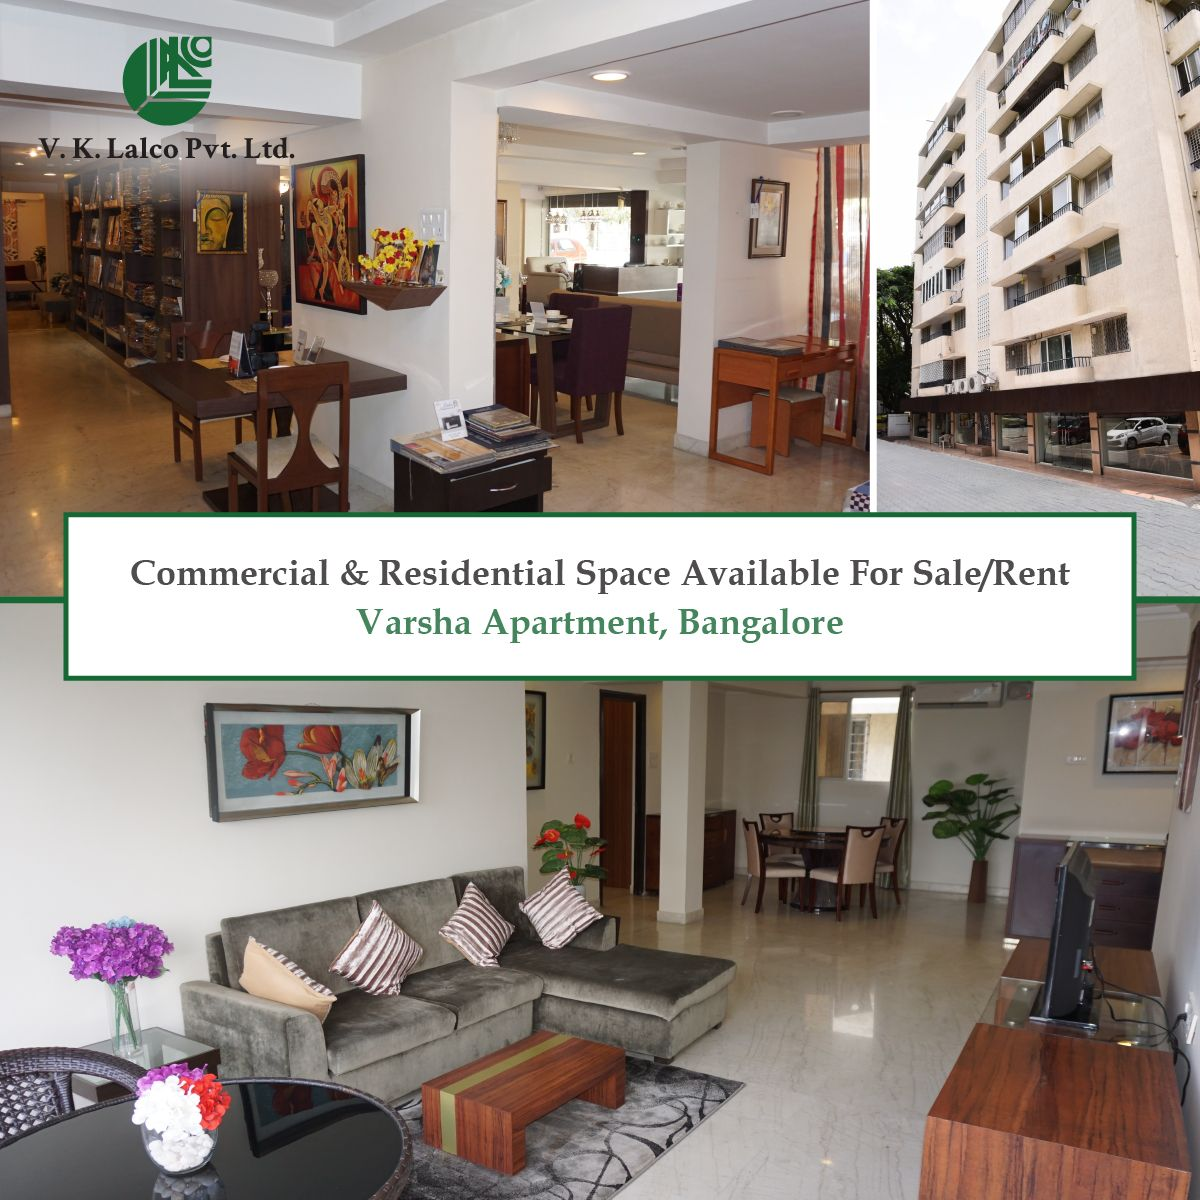 Commercial  Residential Space Available For SaleRent at Varsha Apartment Bangalore